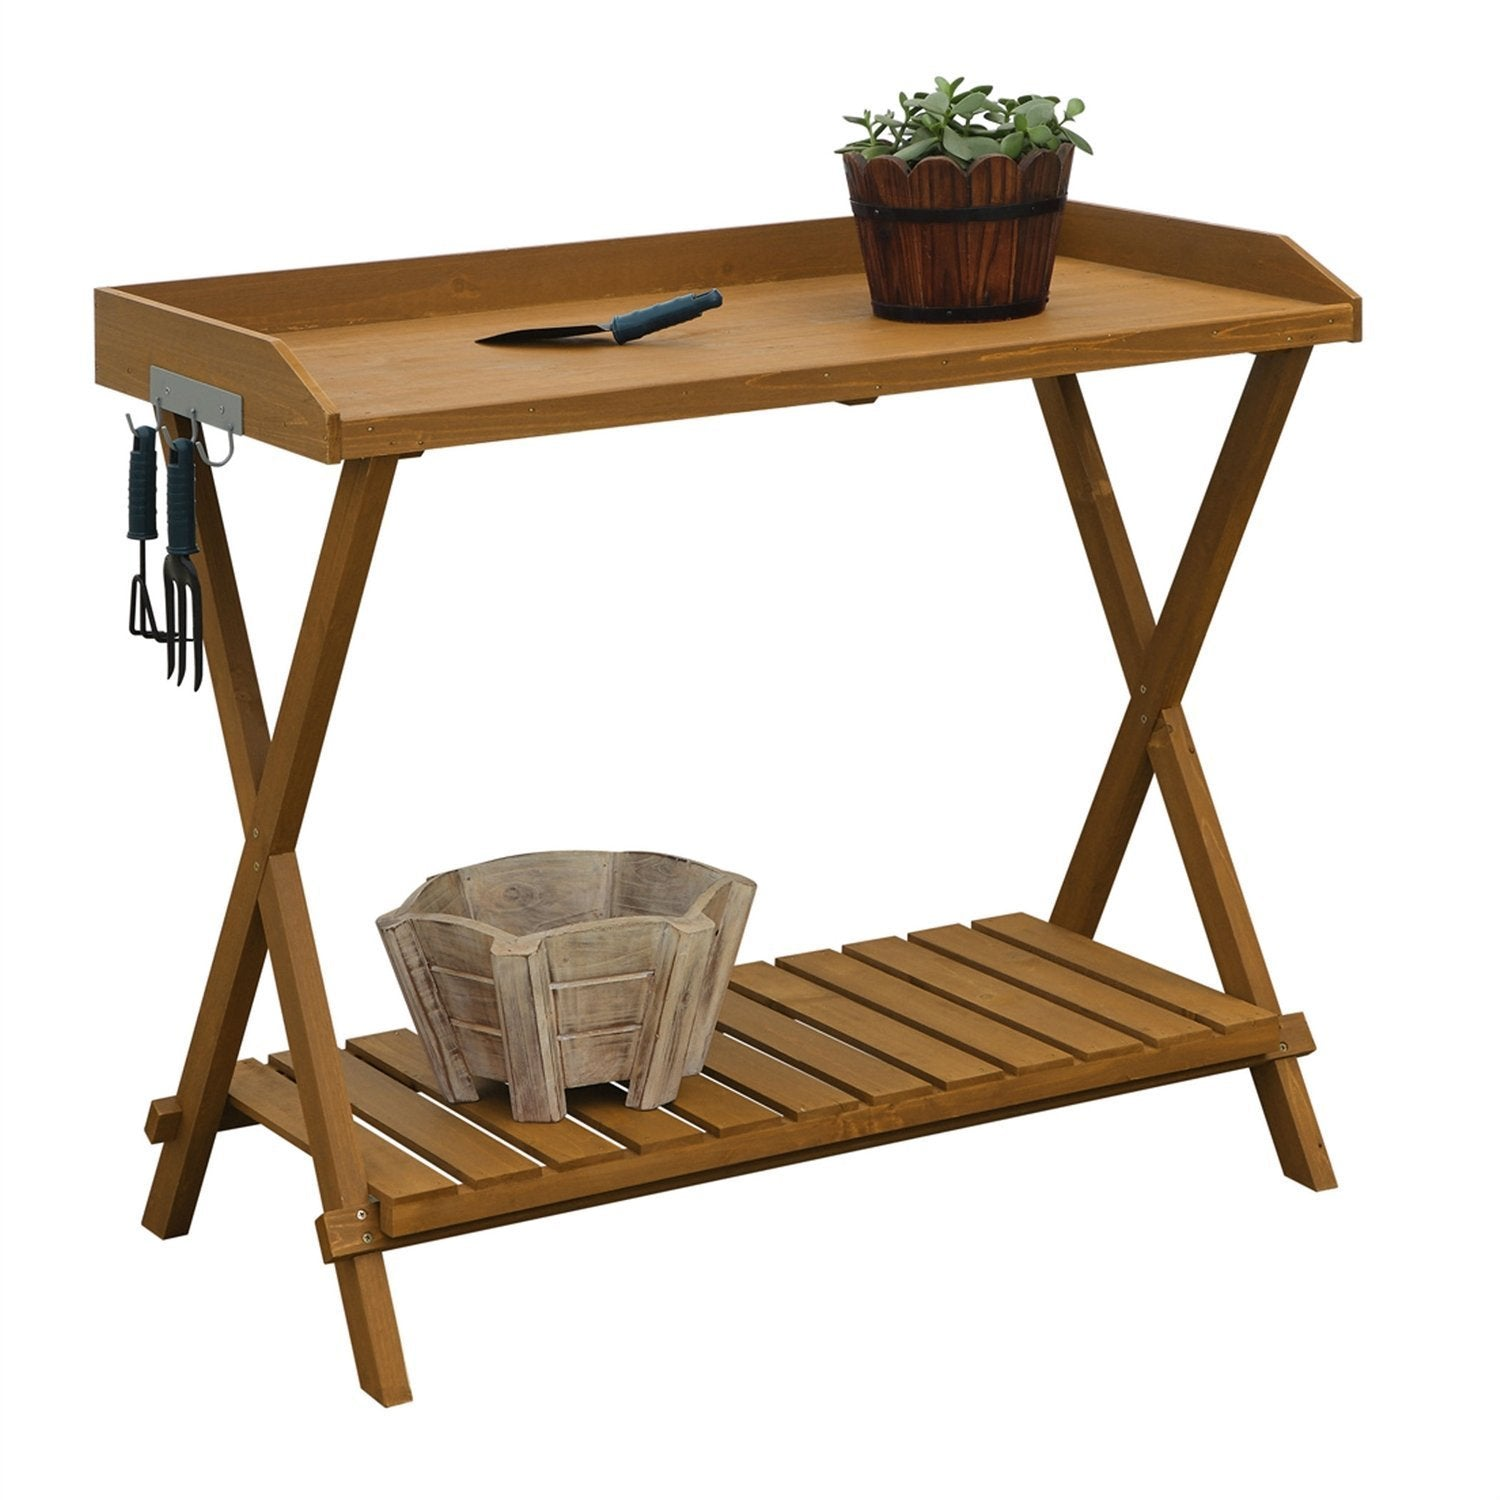 Outdoor Folding Garden Table Potting Bench with Slatted Bottom.